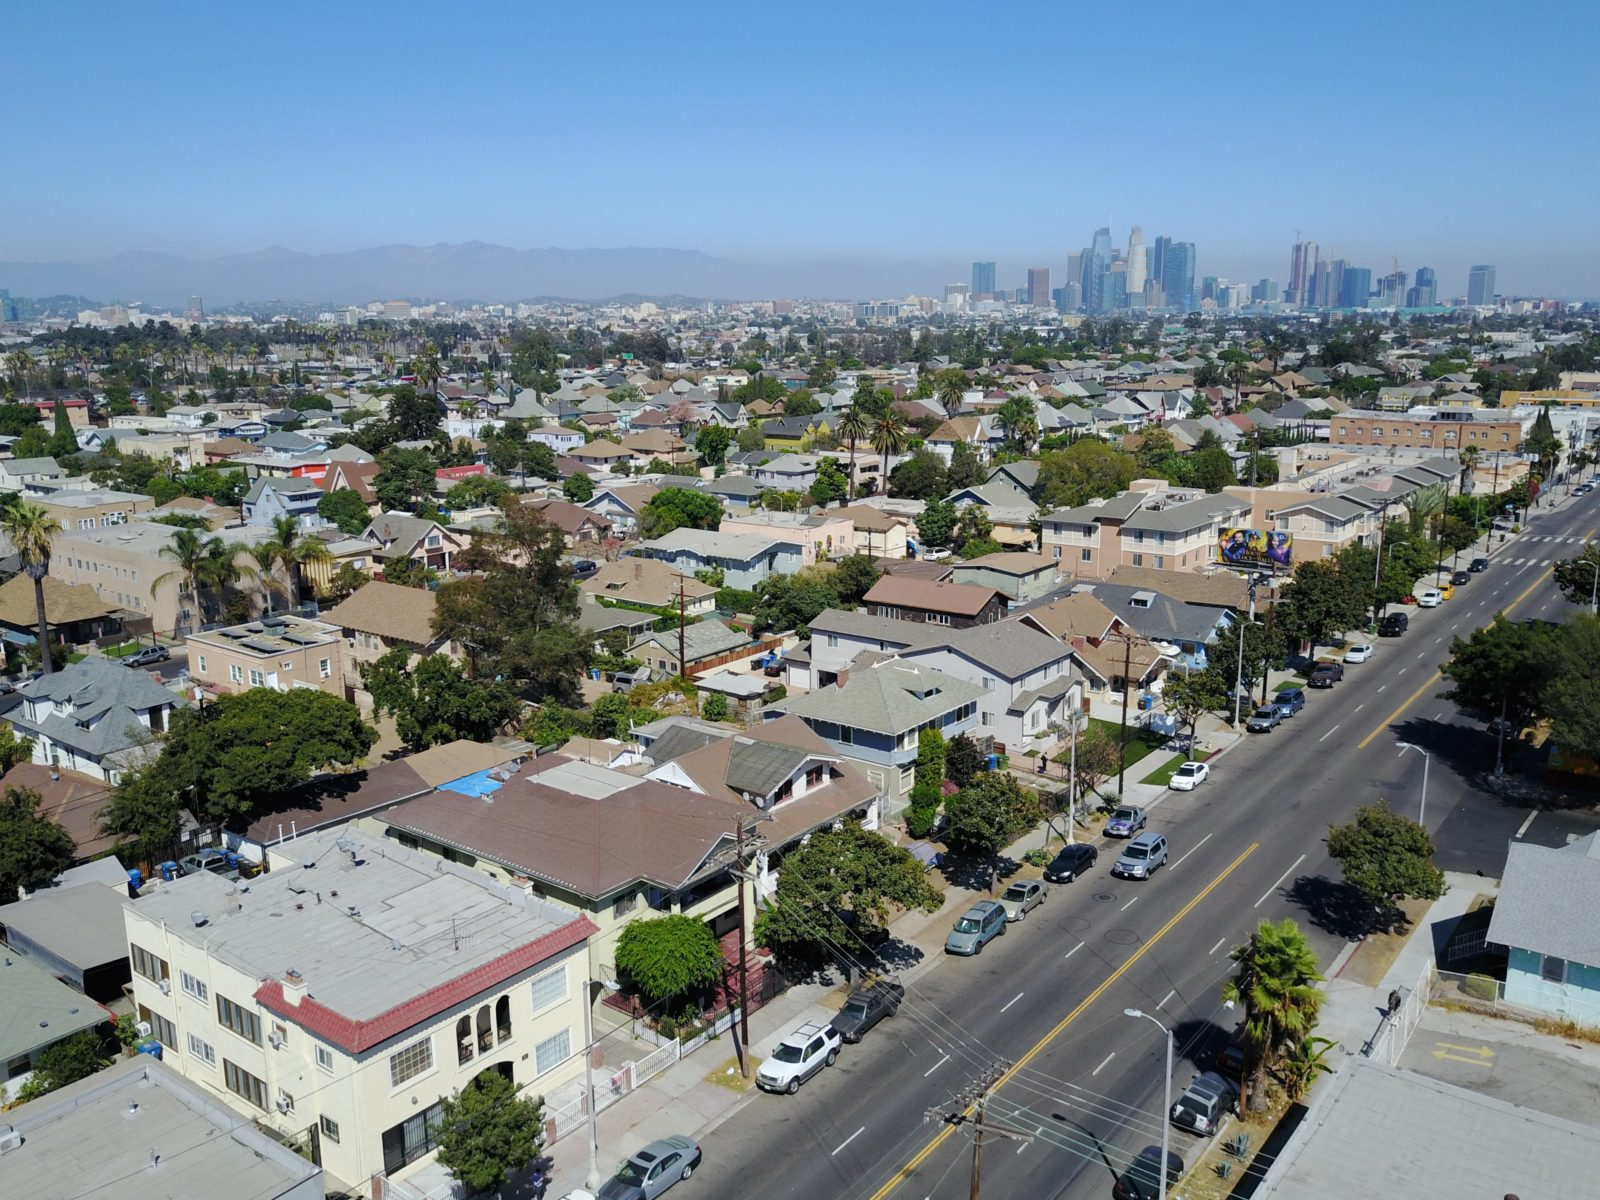 Aerial view of 4 unit apartment building for sale at 1853 W Adams Blvd, Los Angeles, CA 90018